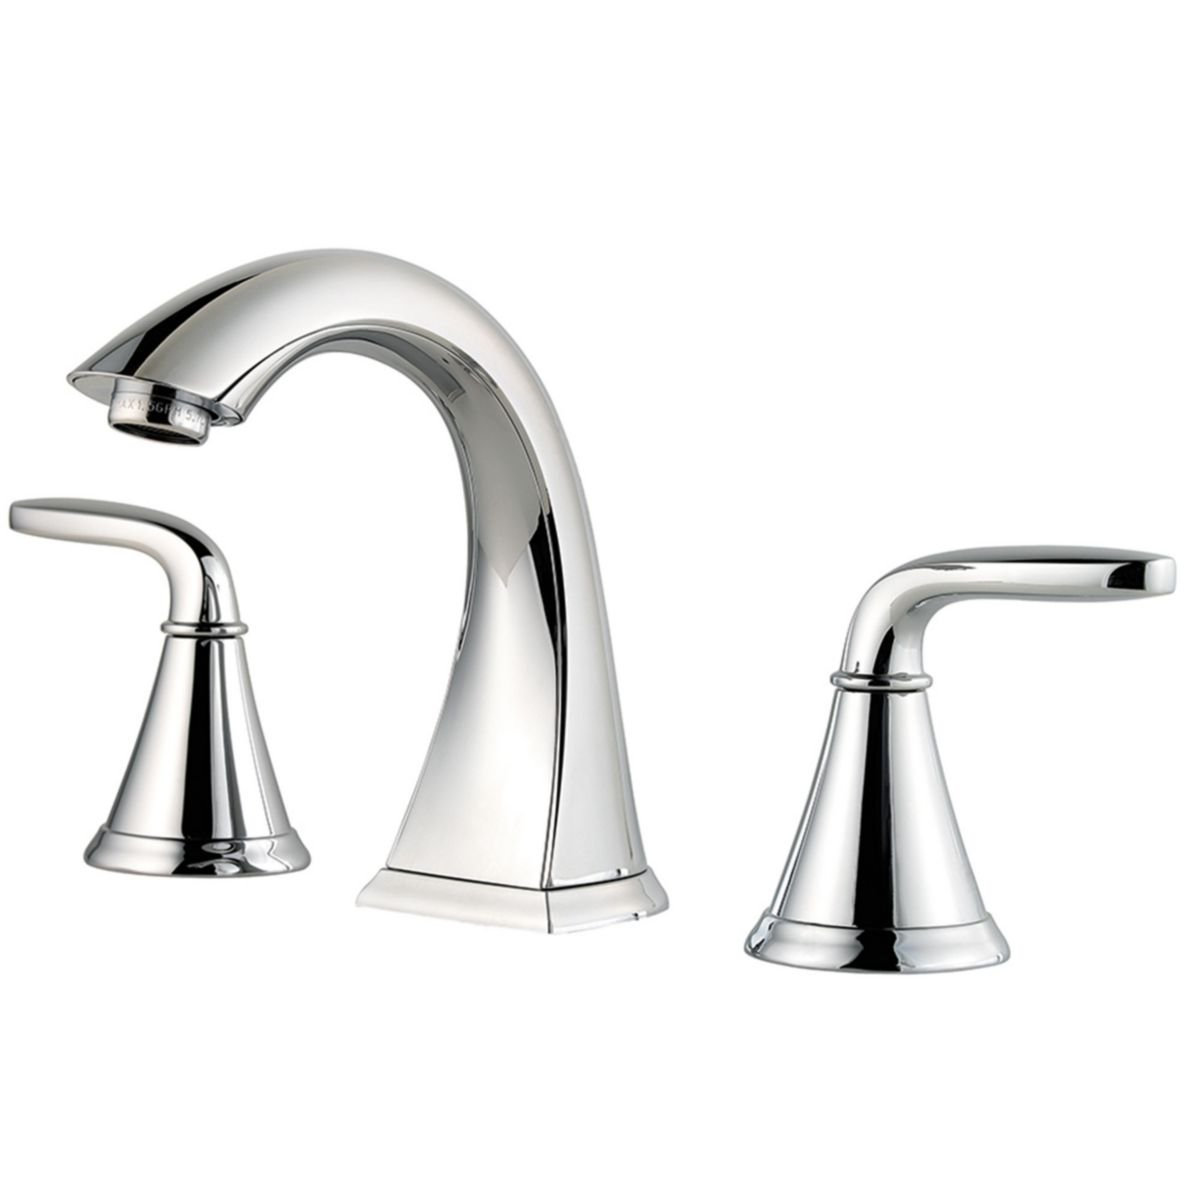 Pfister LF049PDCC Pasadena 2 Handle 8 Inch Widespread Bathroom Faucet in Polished Chrome by Pfister (Image #1)